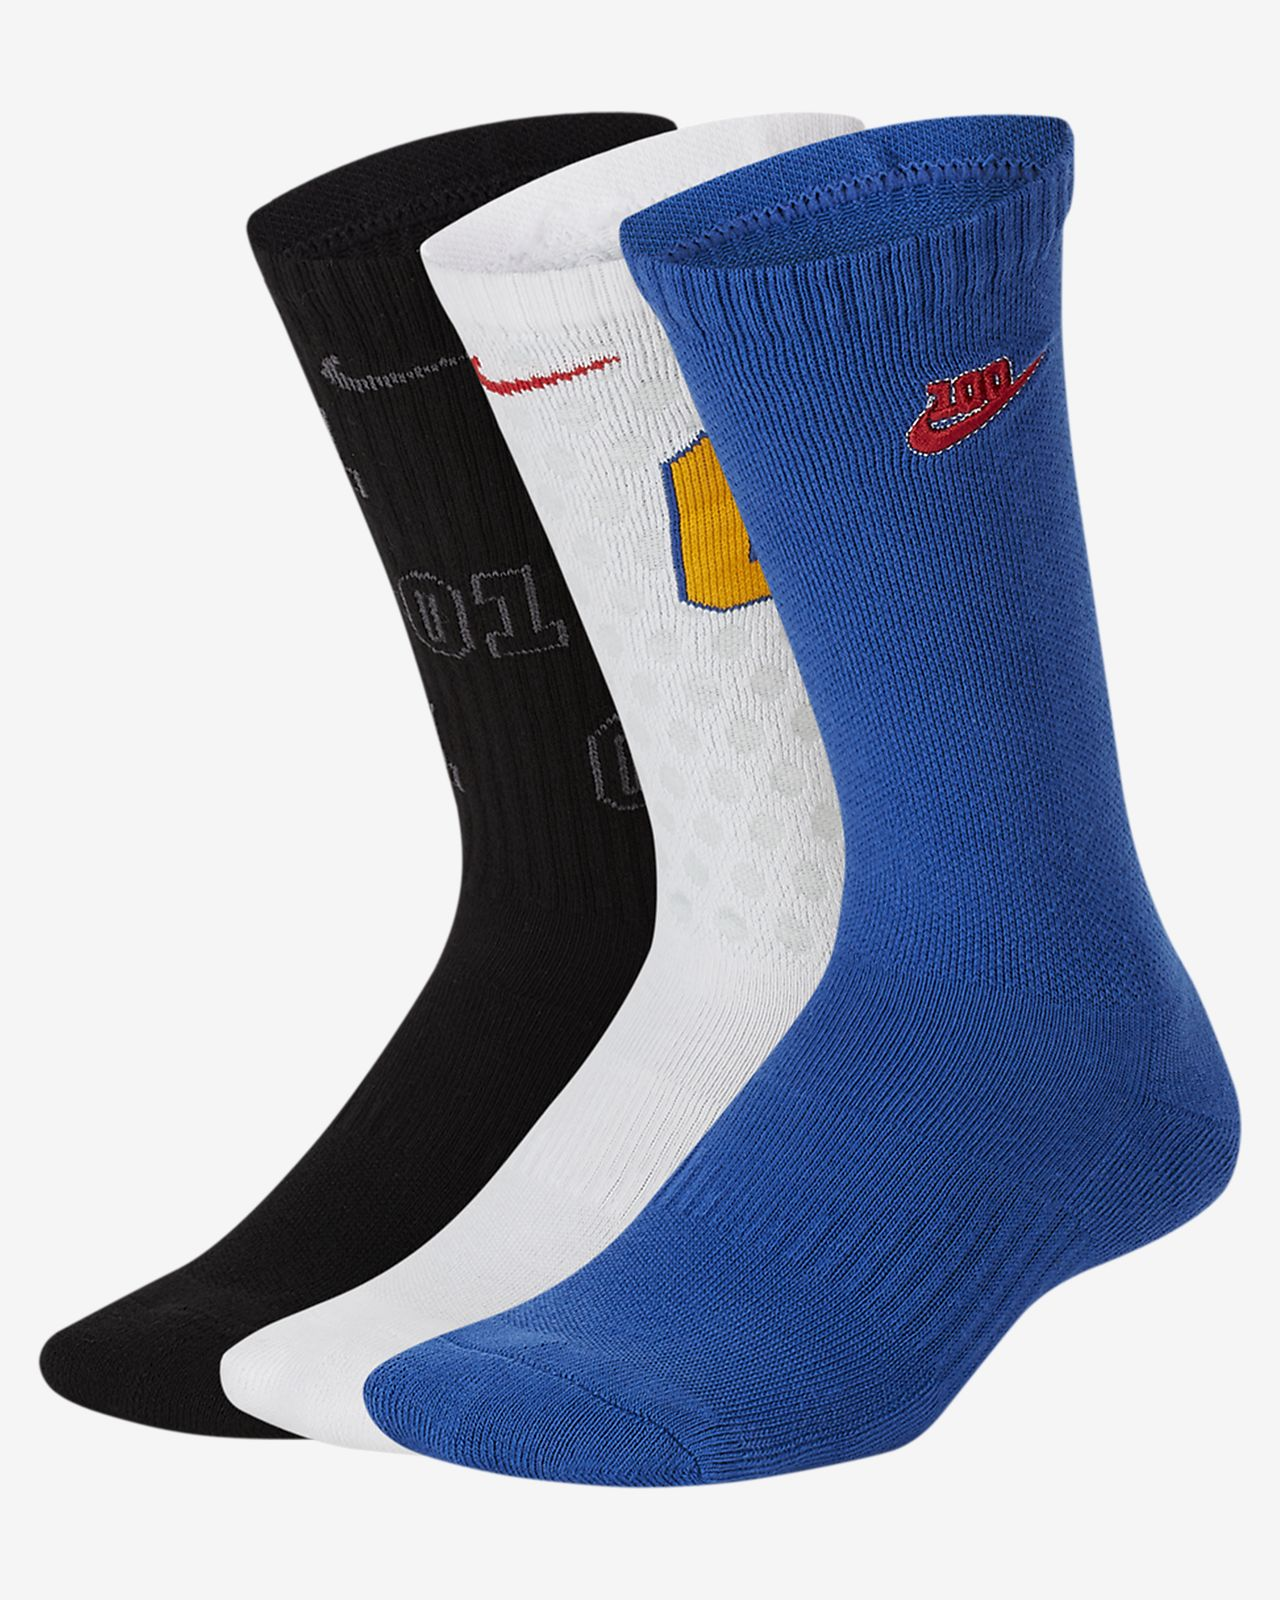 Nike Everyday Calcetines largos acolchados (3 pares) Niñoa